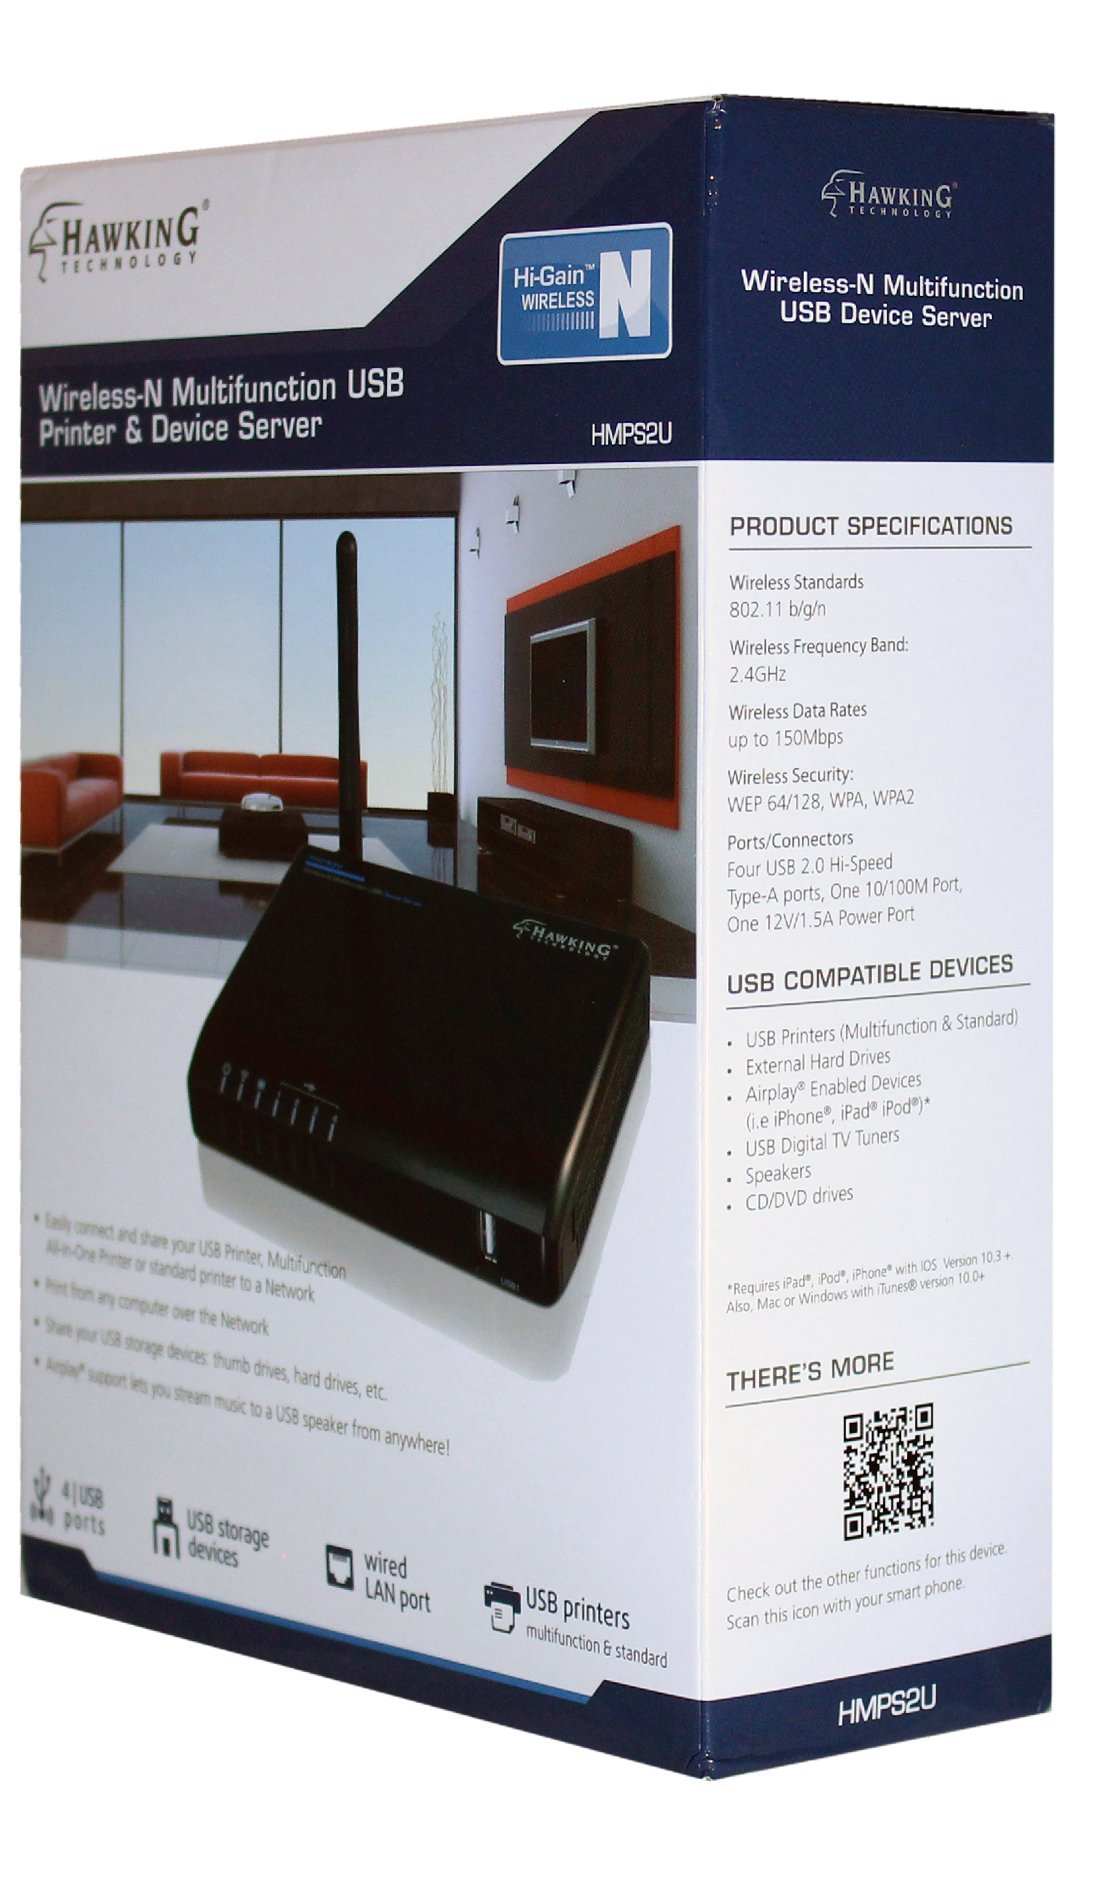 Hawking Technology 4-Port Wireless-N Multifunction USB Printer and Device Server (HMPS2U) by Hawking Technology (Image #2)